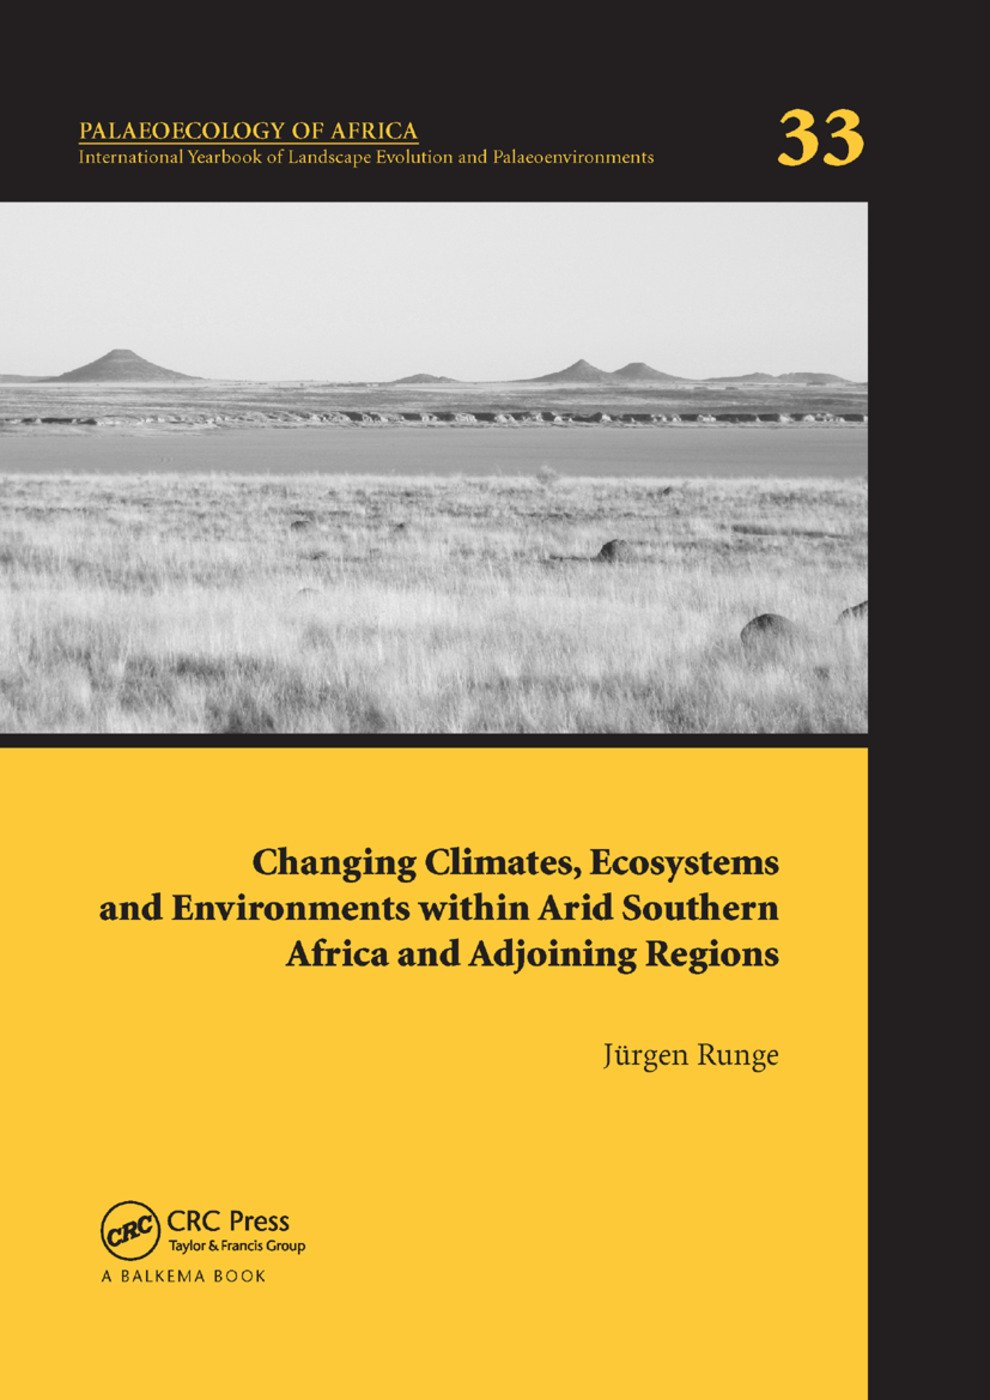 Changing Climates, Ecosystems and Environments within Arid Southern Africa and Adjoining Regions: Palaeoecology of Africa 33 book cover